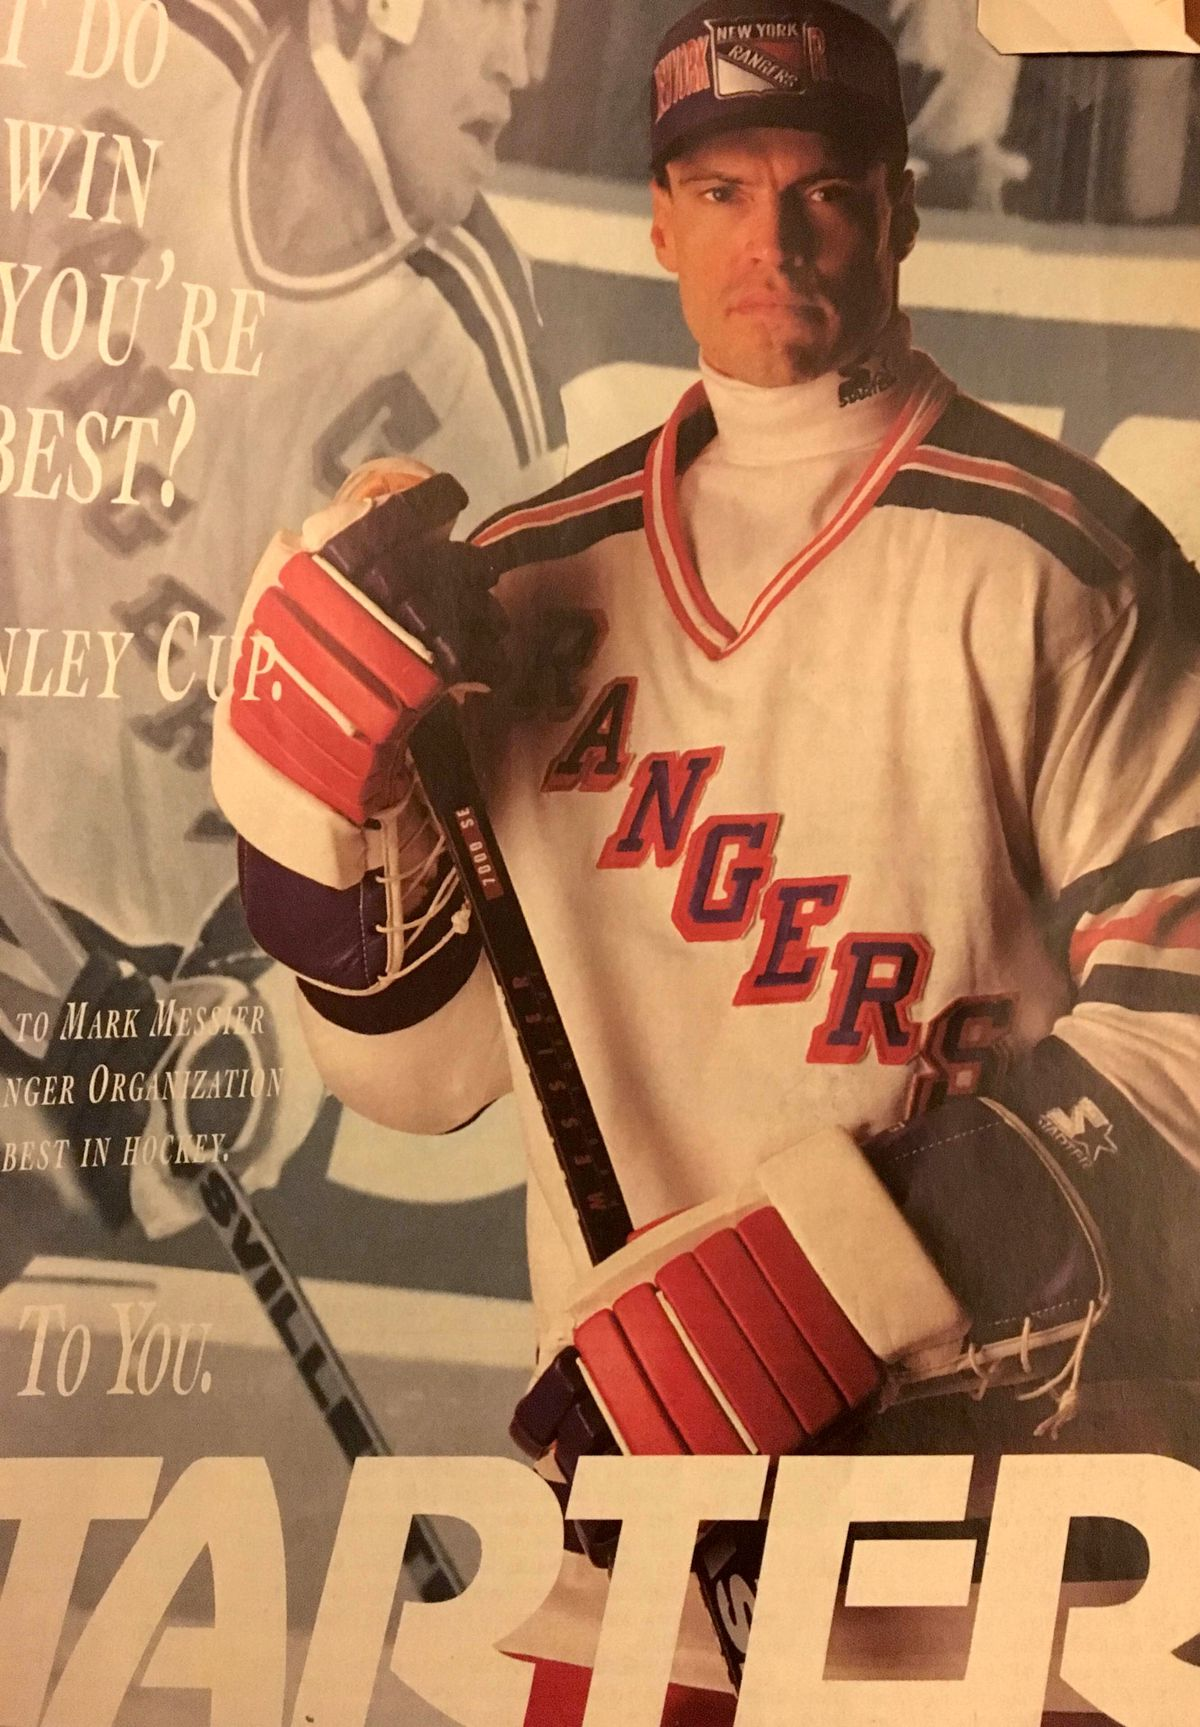 Messier in a bad ad for bad apparel by a bad company with a bad team